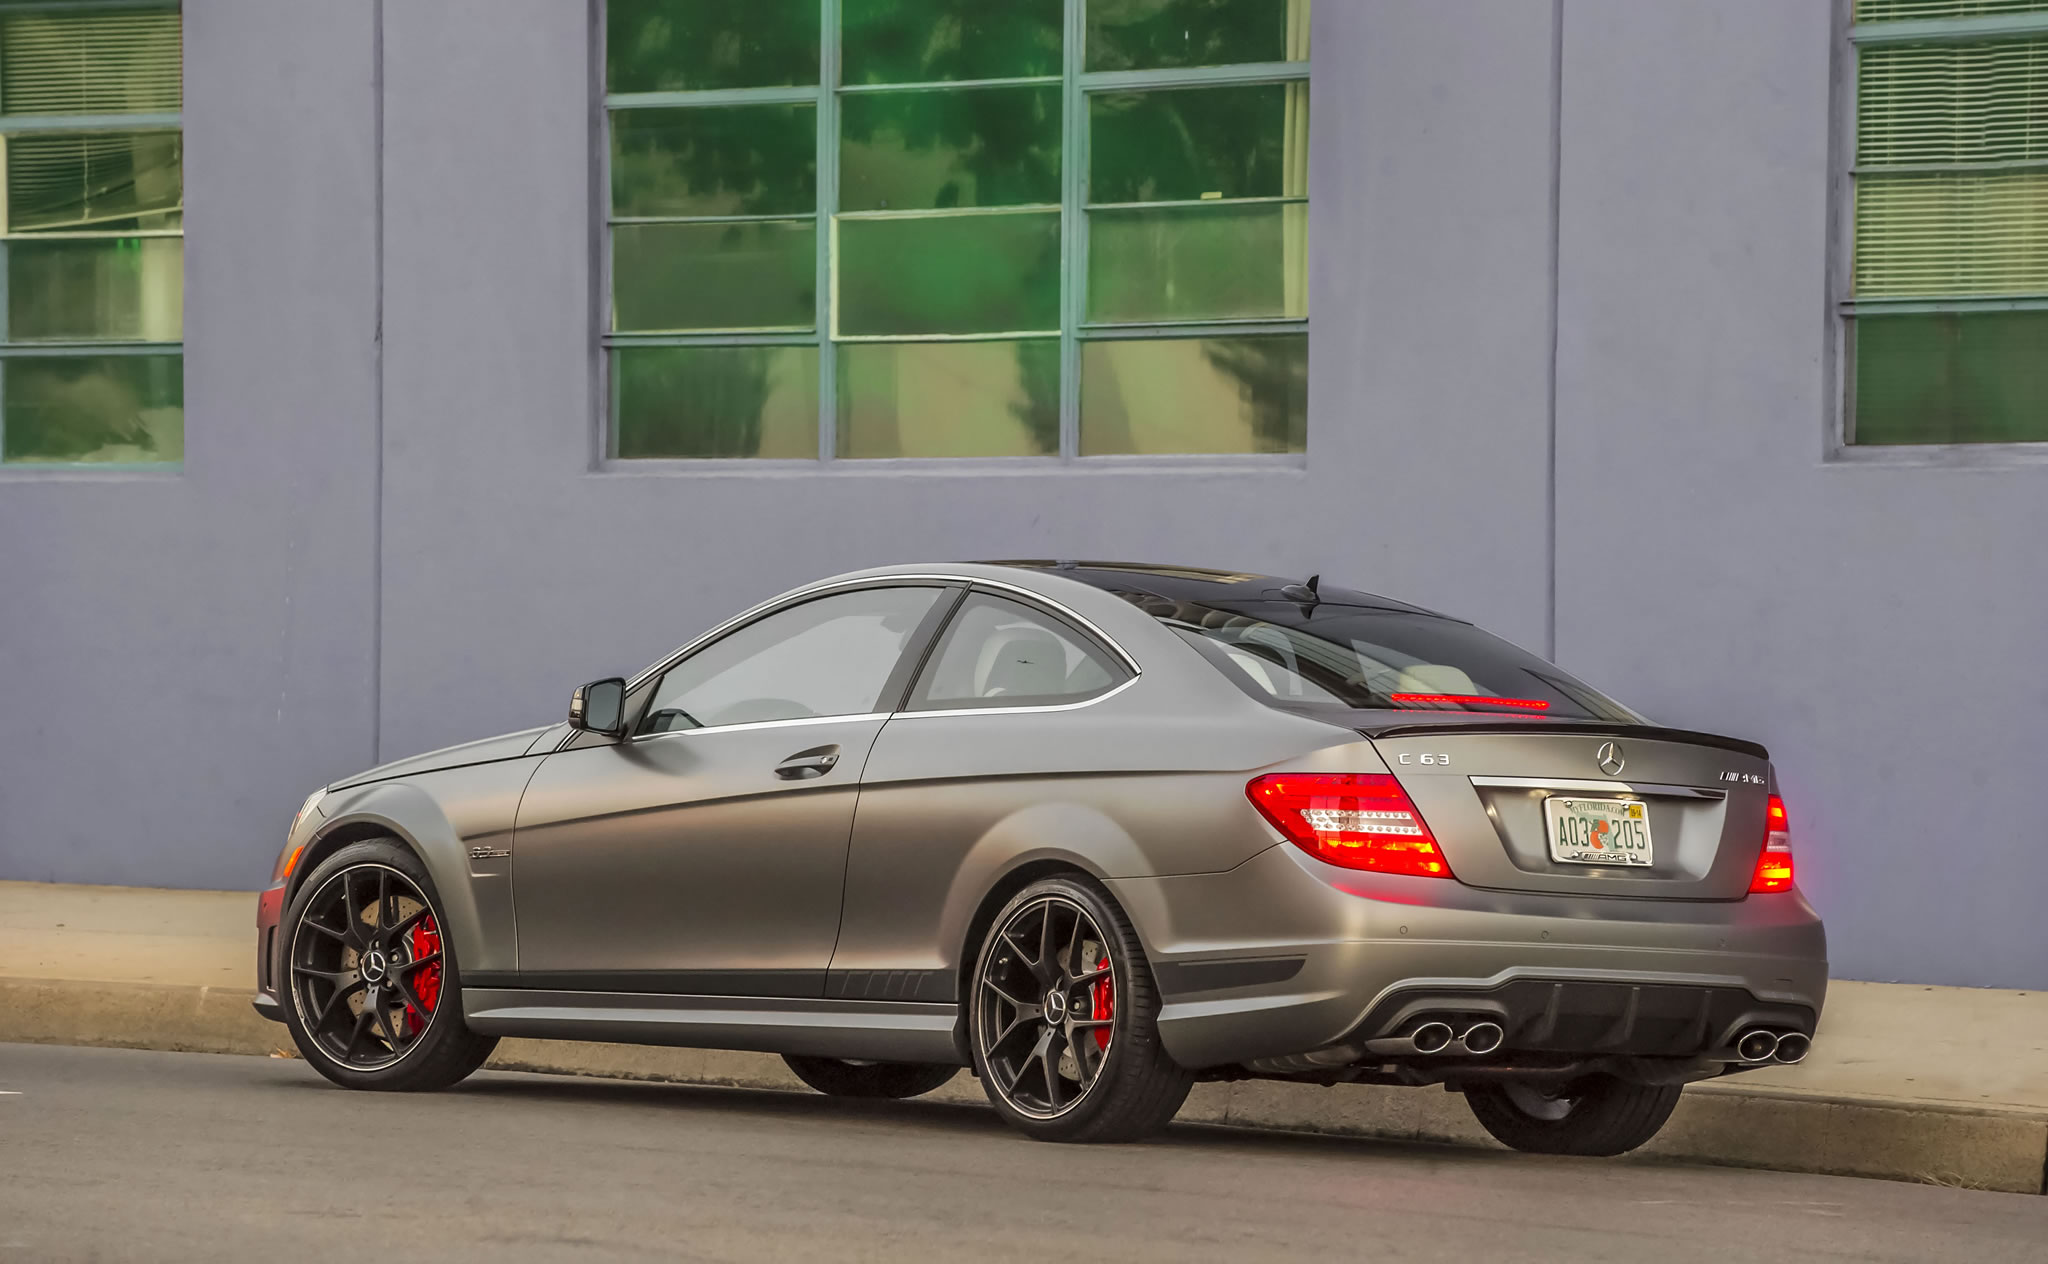 2014 mercedes benz c63 amg coupe edition 507 rear photo for Mercedes benz c63 amg edition 507